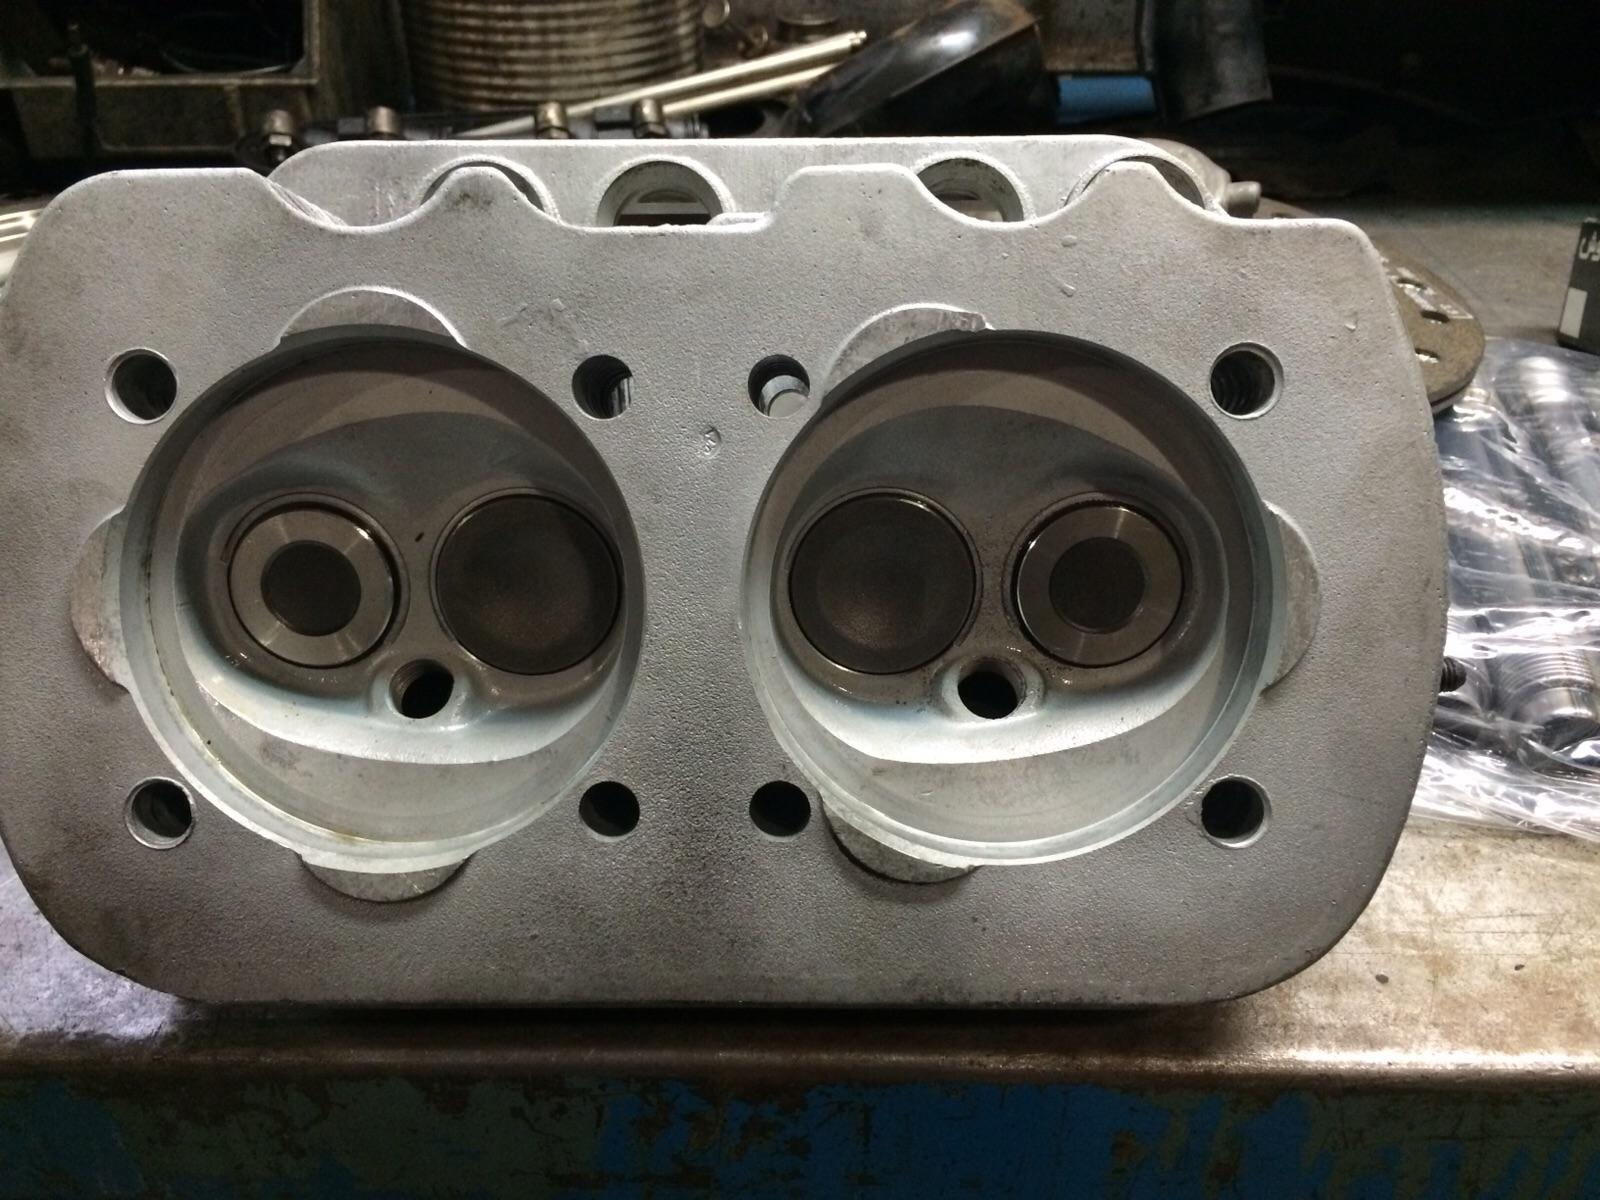 After a trip to the machine shop!